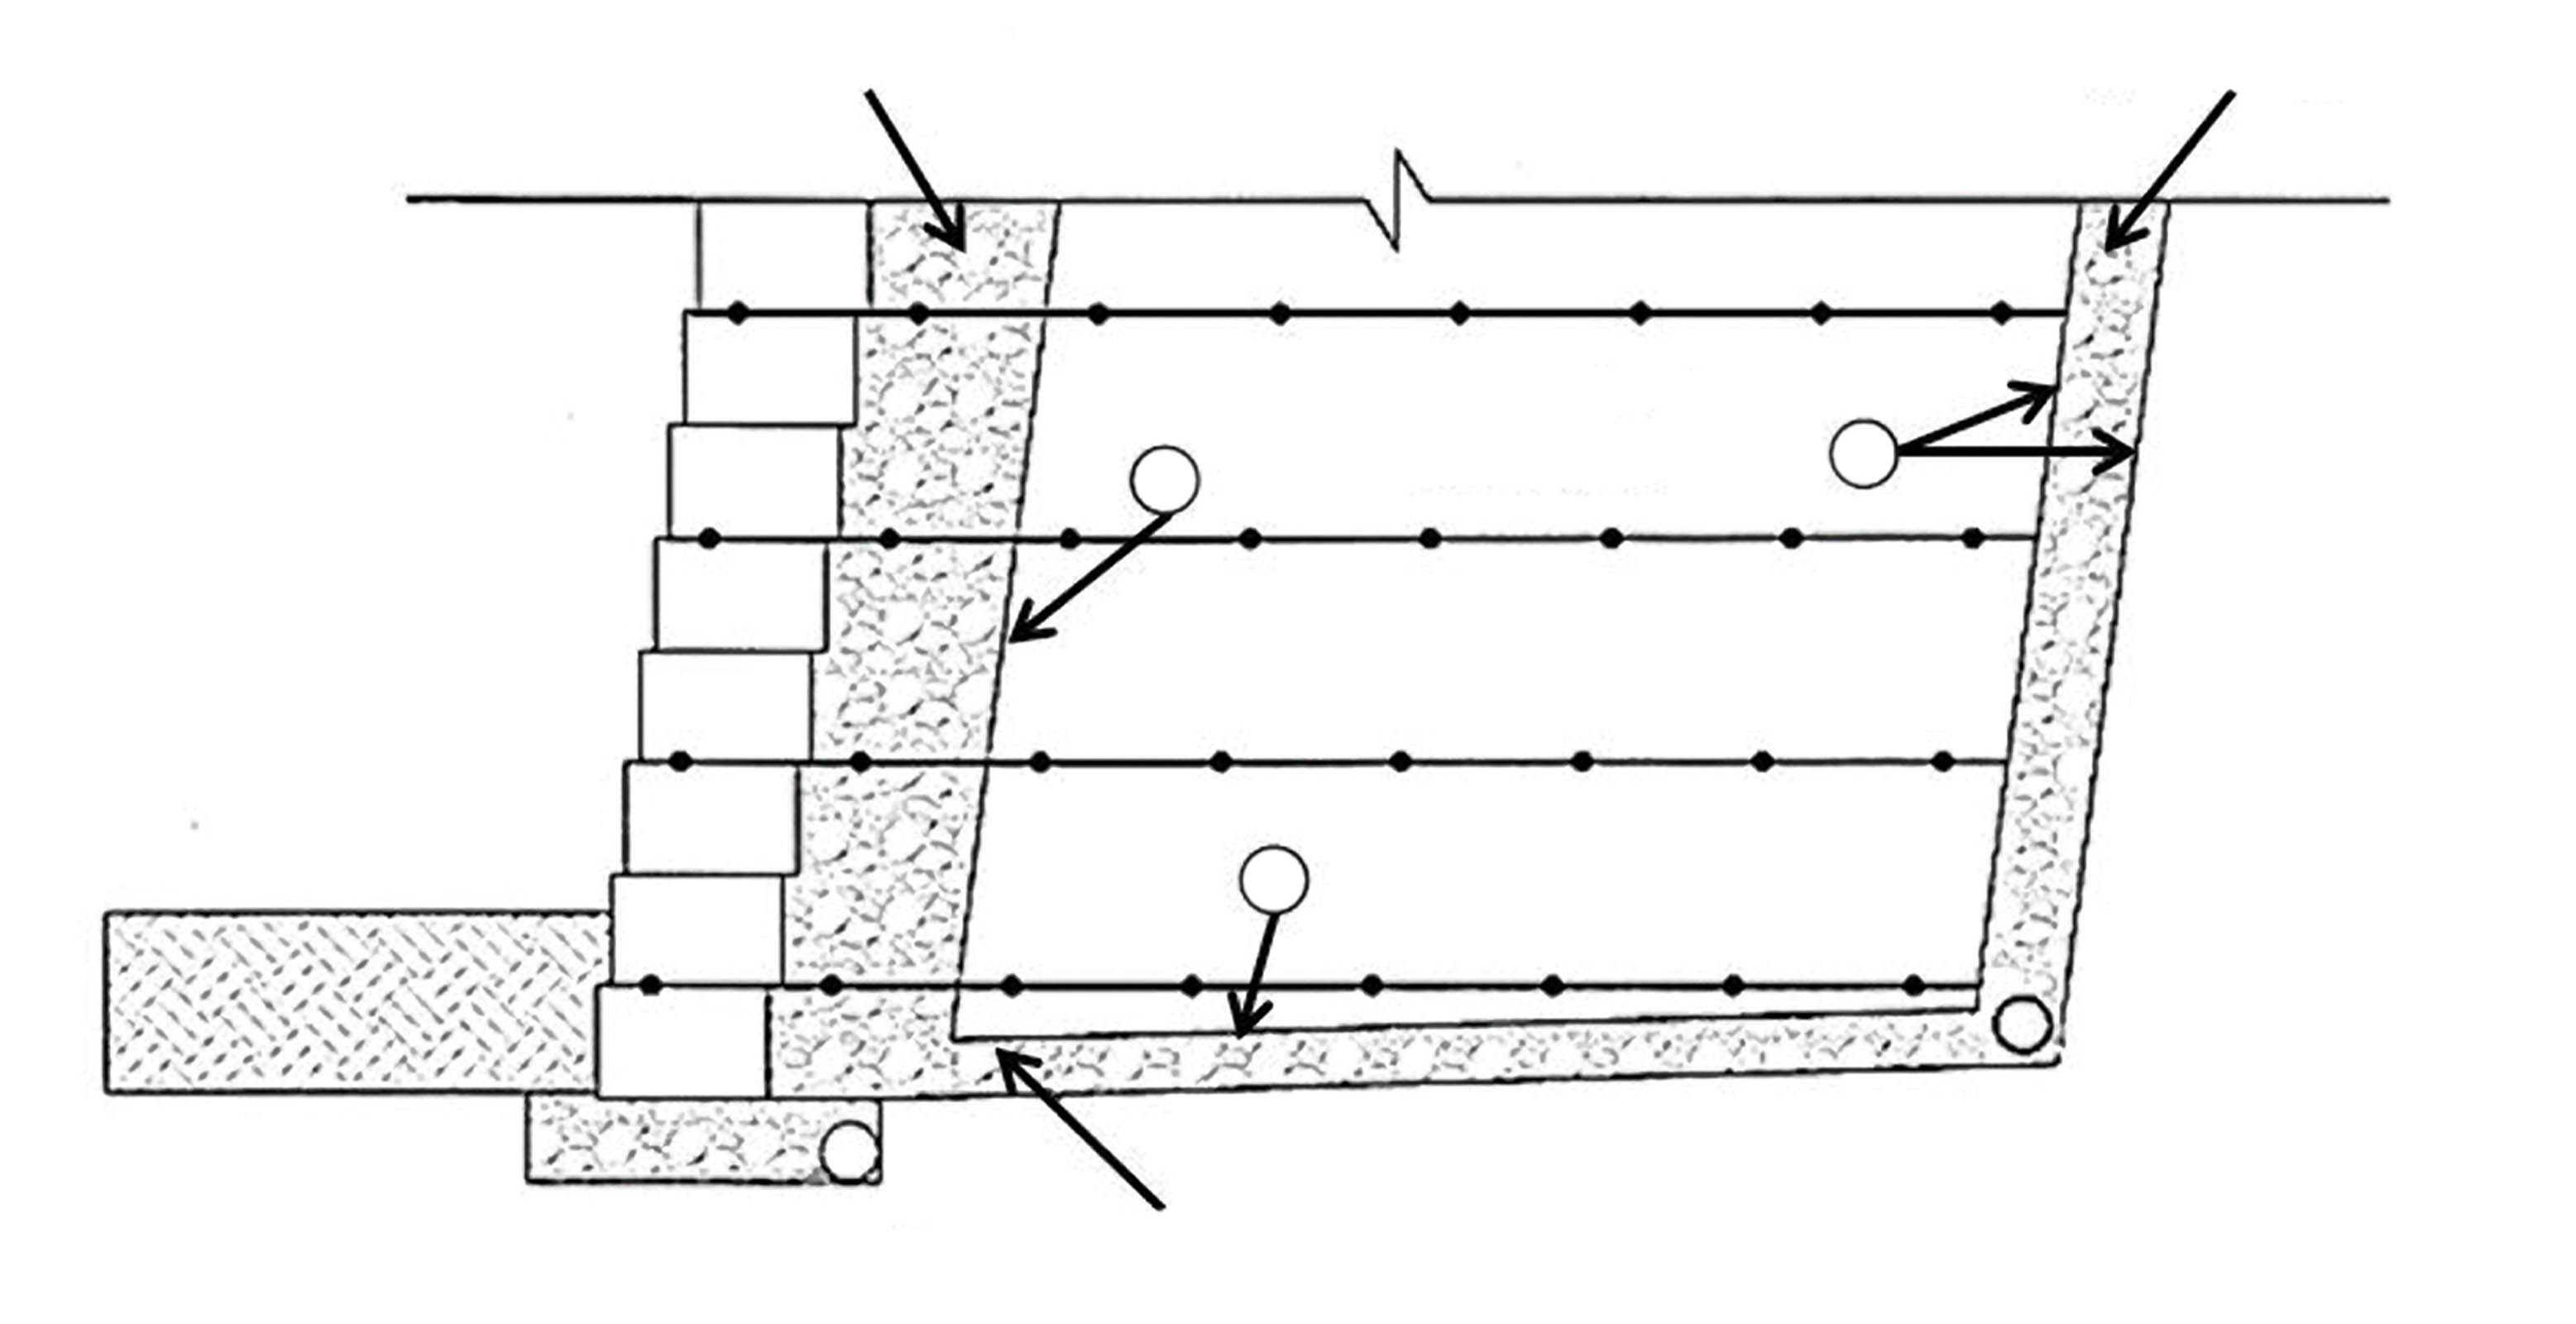 Mse Wall Failures Vis A Vis The Lack Of Filtration Design